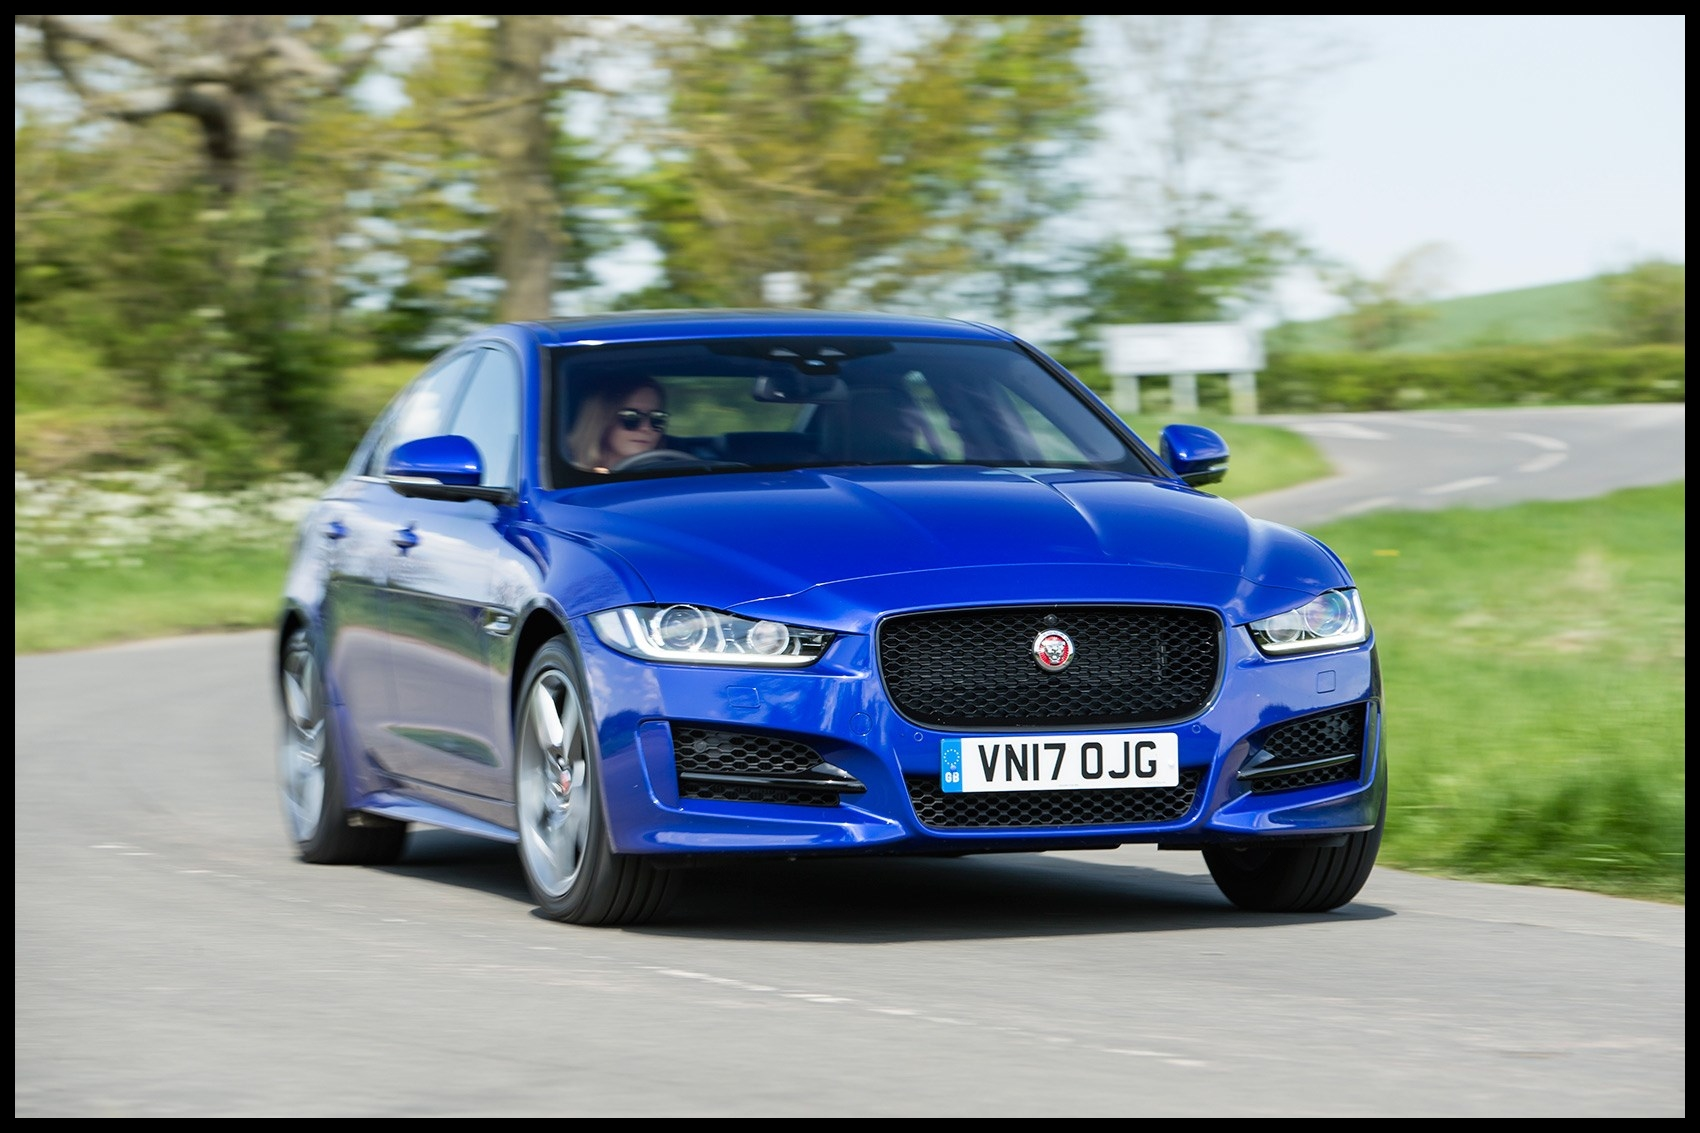 The new 2018 model year Jaguar XE the CAR magazine review